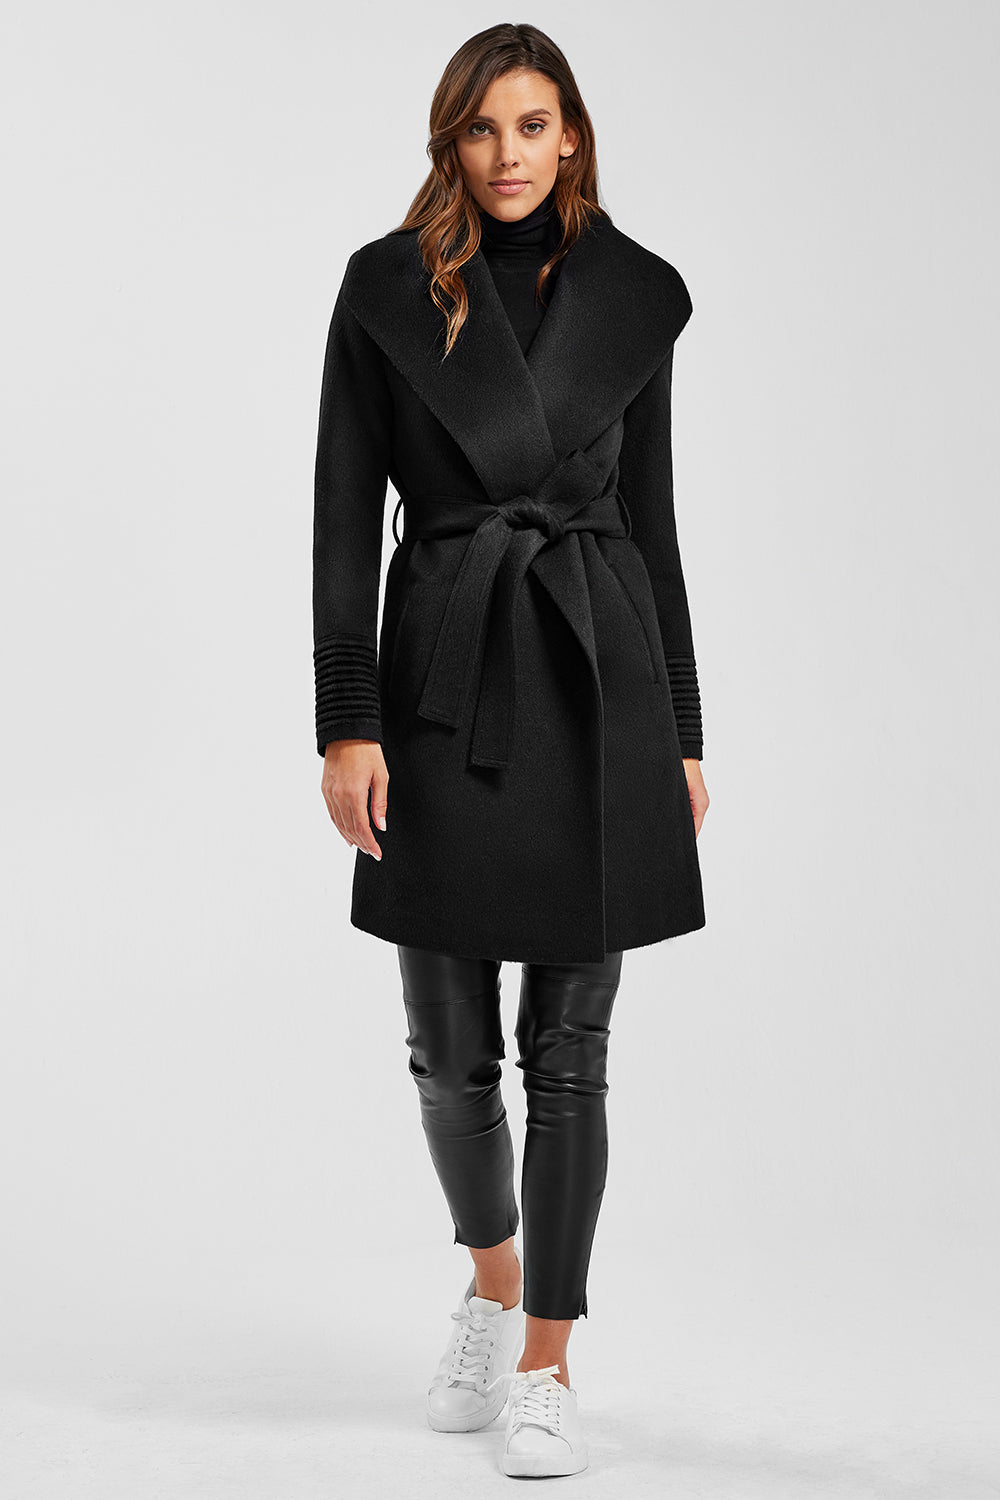 Sentaler Mid Length Shawl Collar Wrap Coat featured in Baby Alpaca and available in Black. Seen from front.